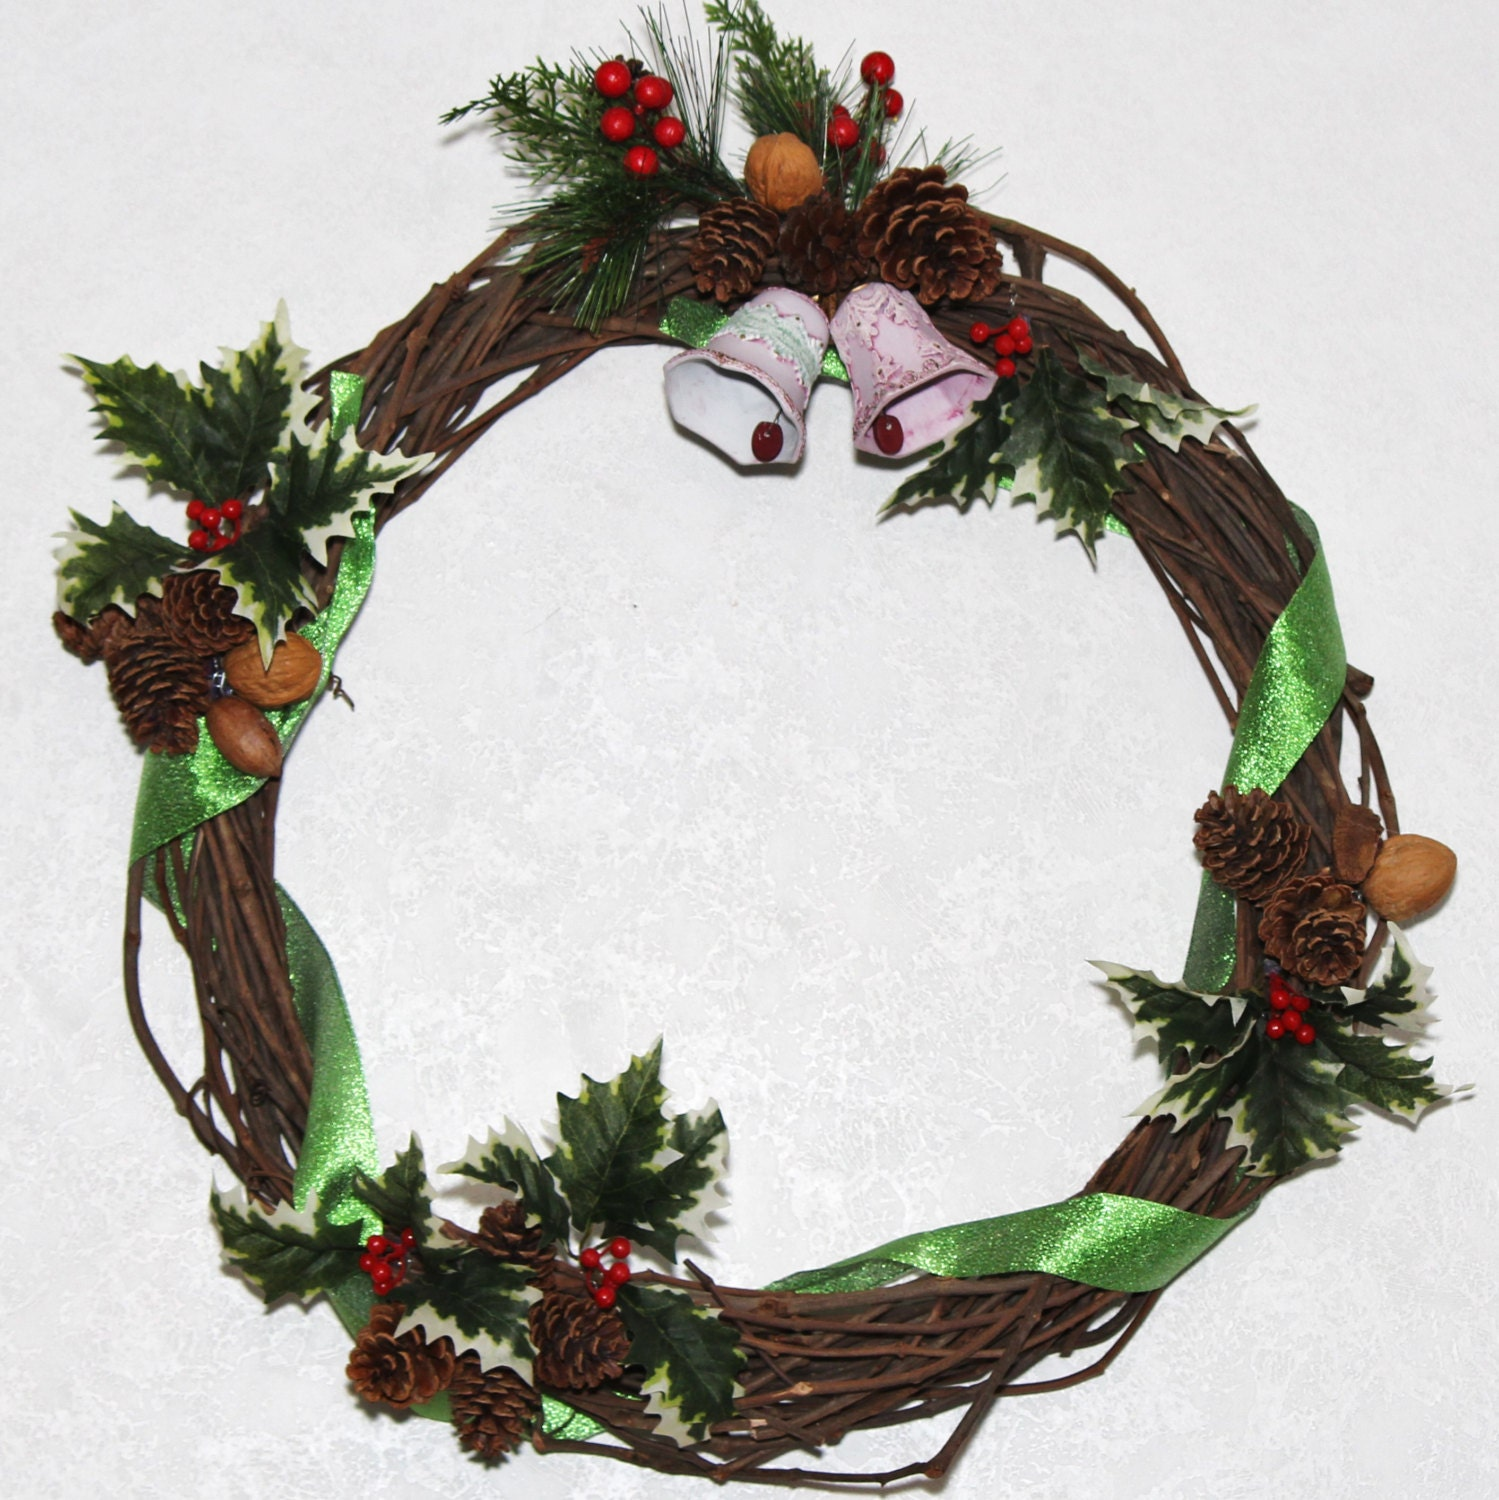 Christmas Bells Wreath; Handmade Christmas Grapevine Wreath; Handmade Grapevine Wreath